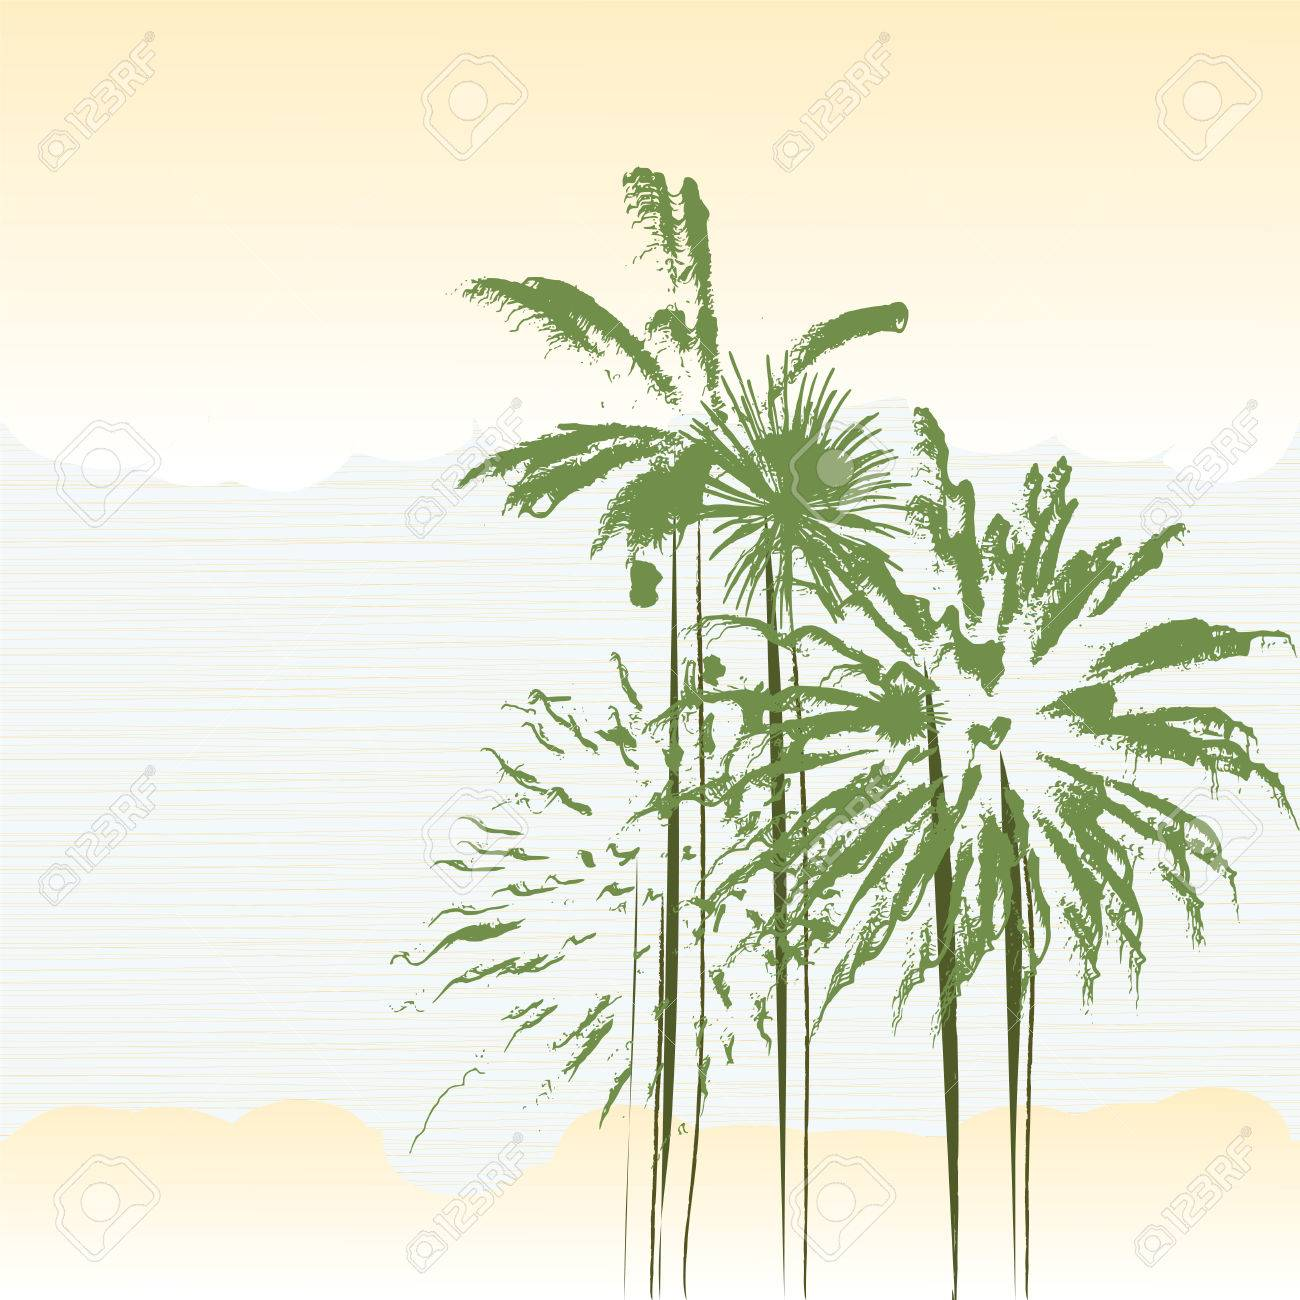 Stylized Palm Trees Background In Pastel Colors Royalty Free ...